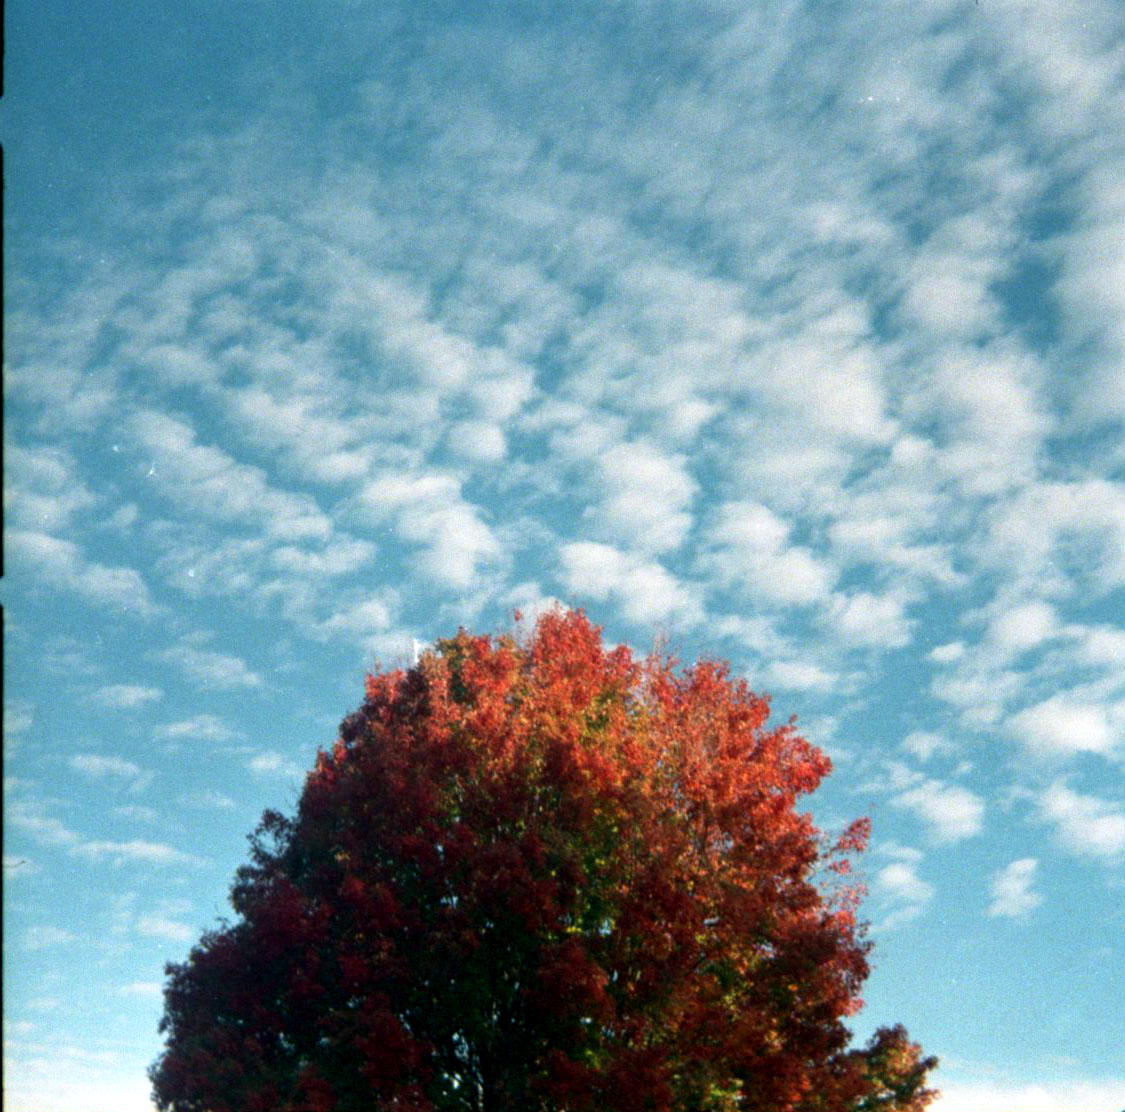 red_tree_and_clouds.jpg